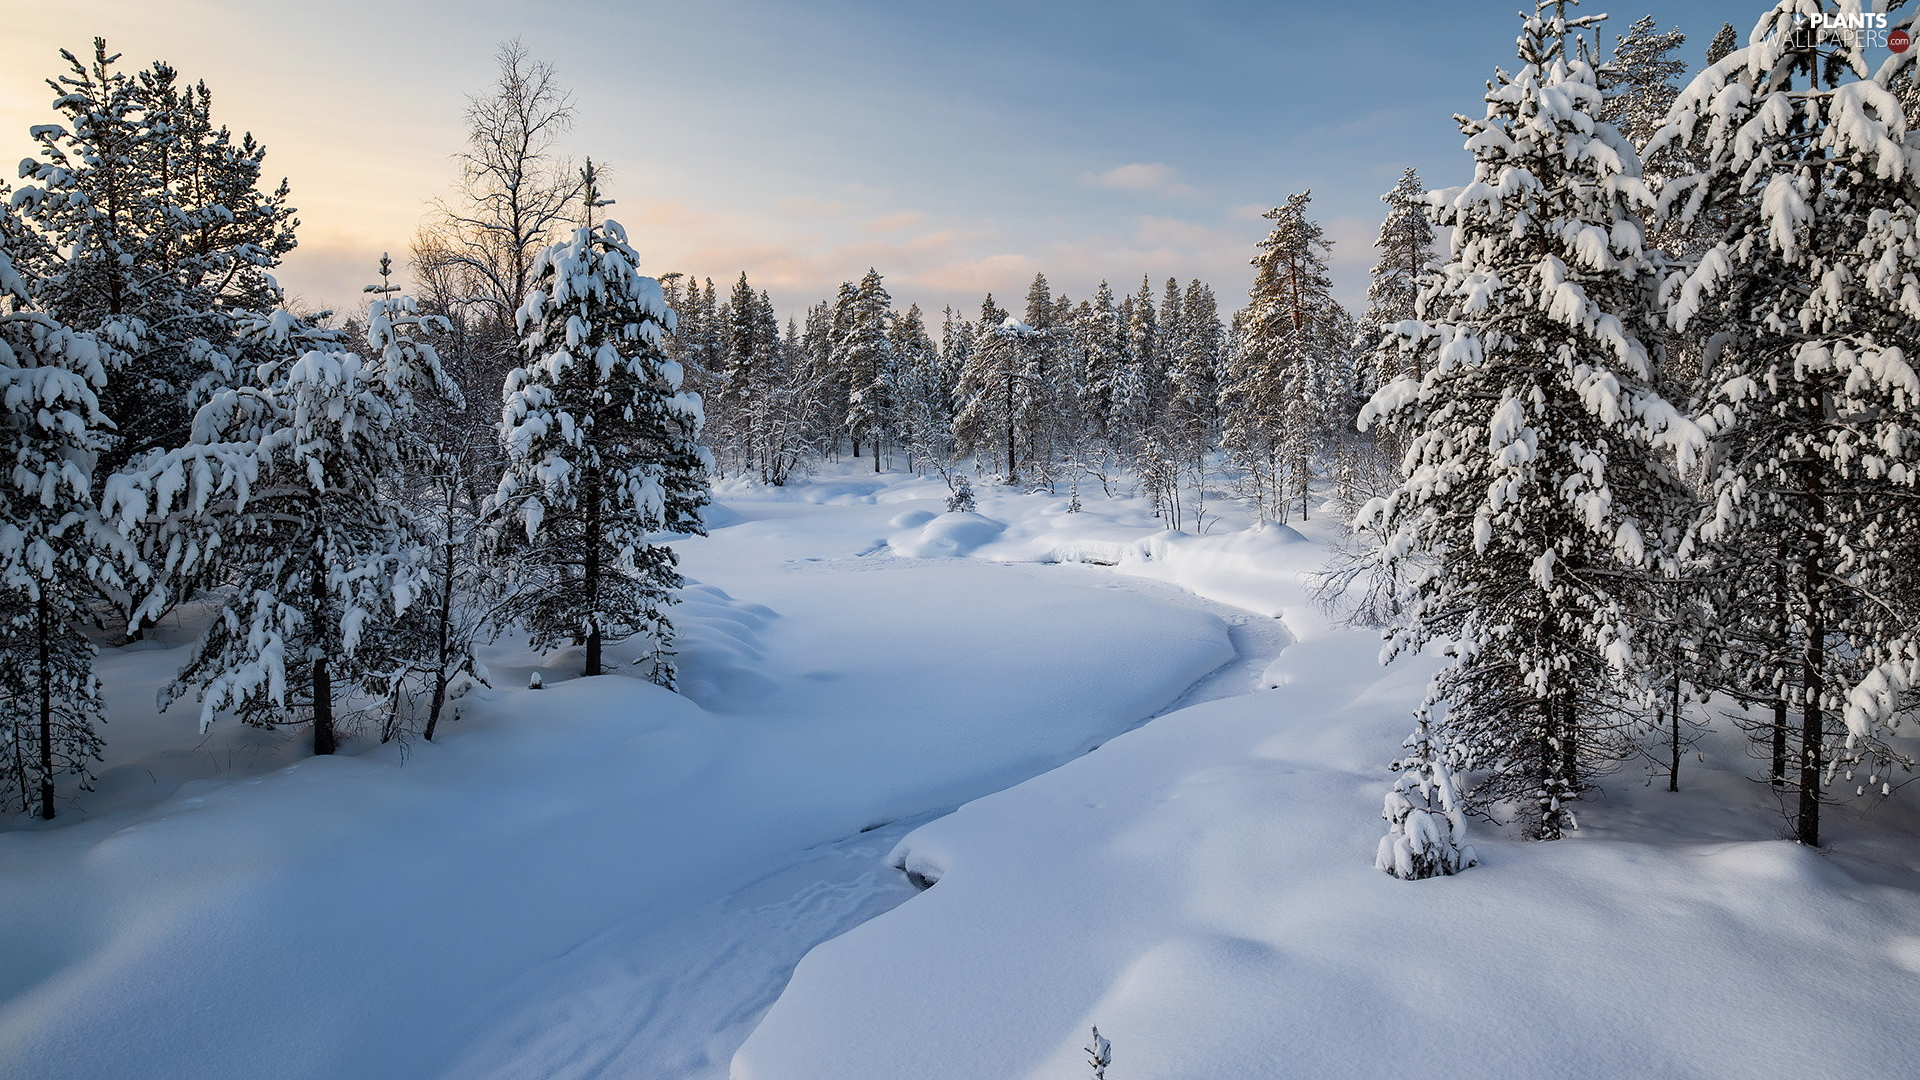 Snowy, Spruces, River, trees, snow, forest, winter, viewes